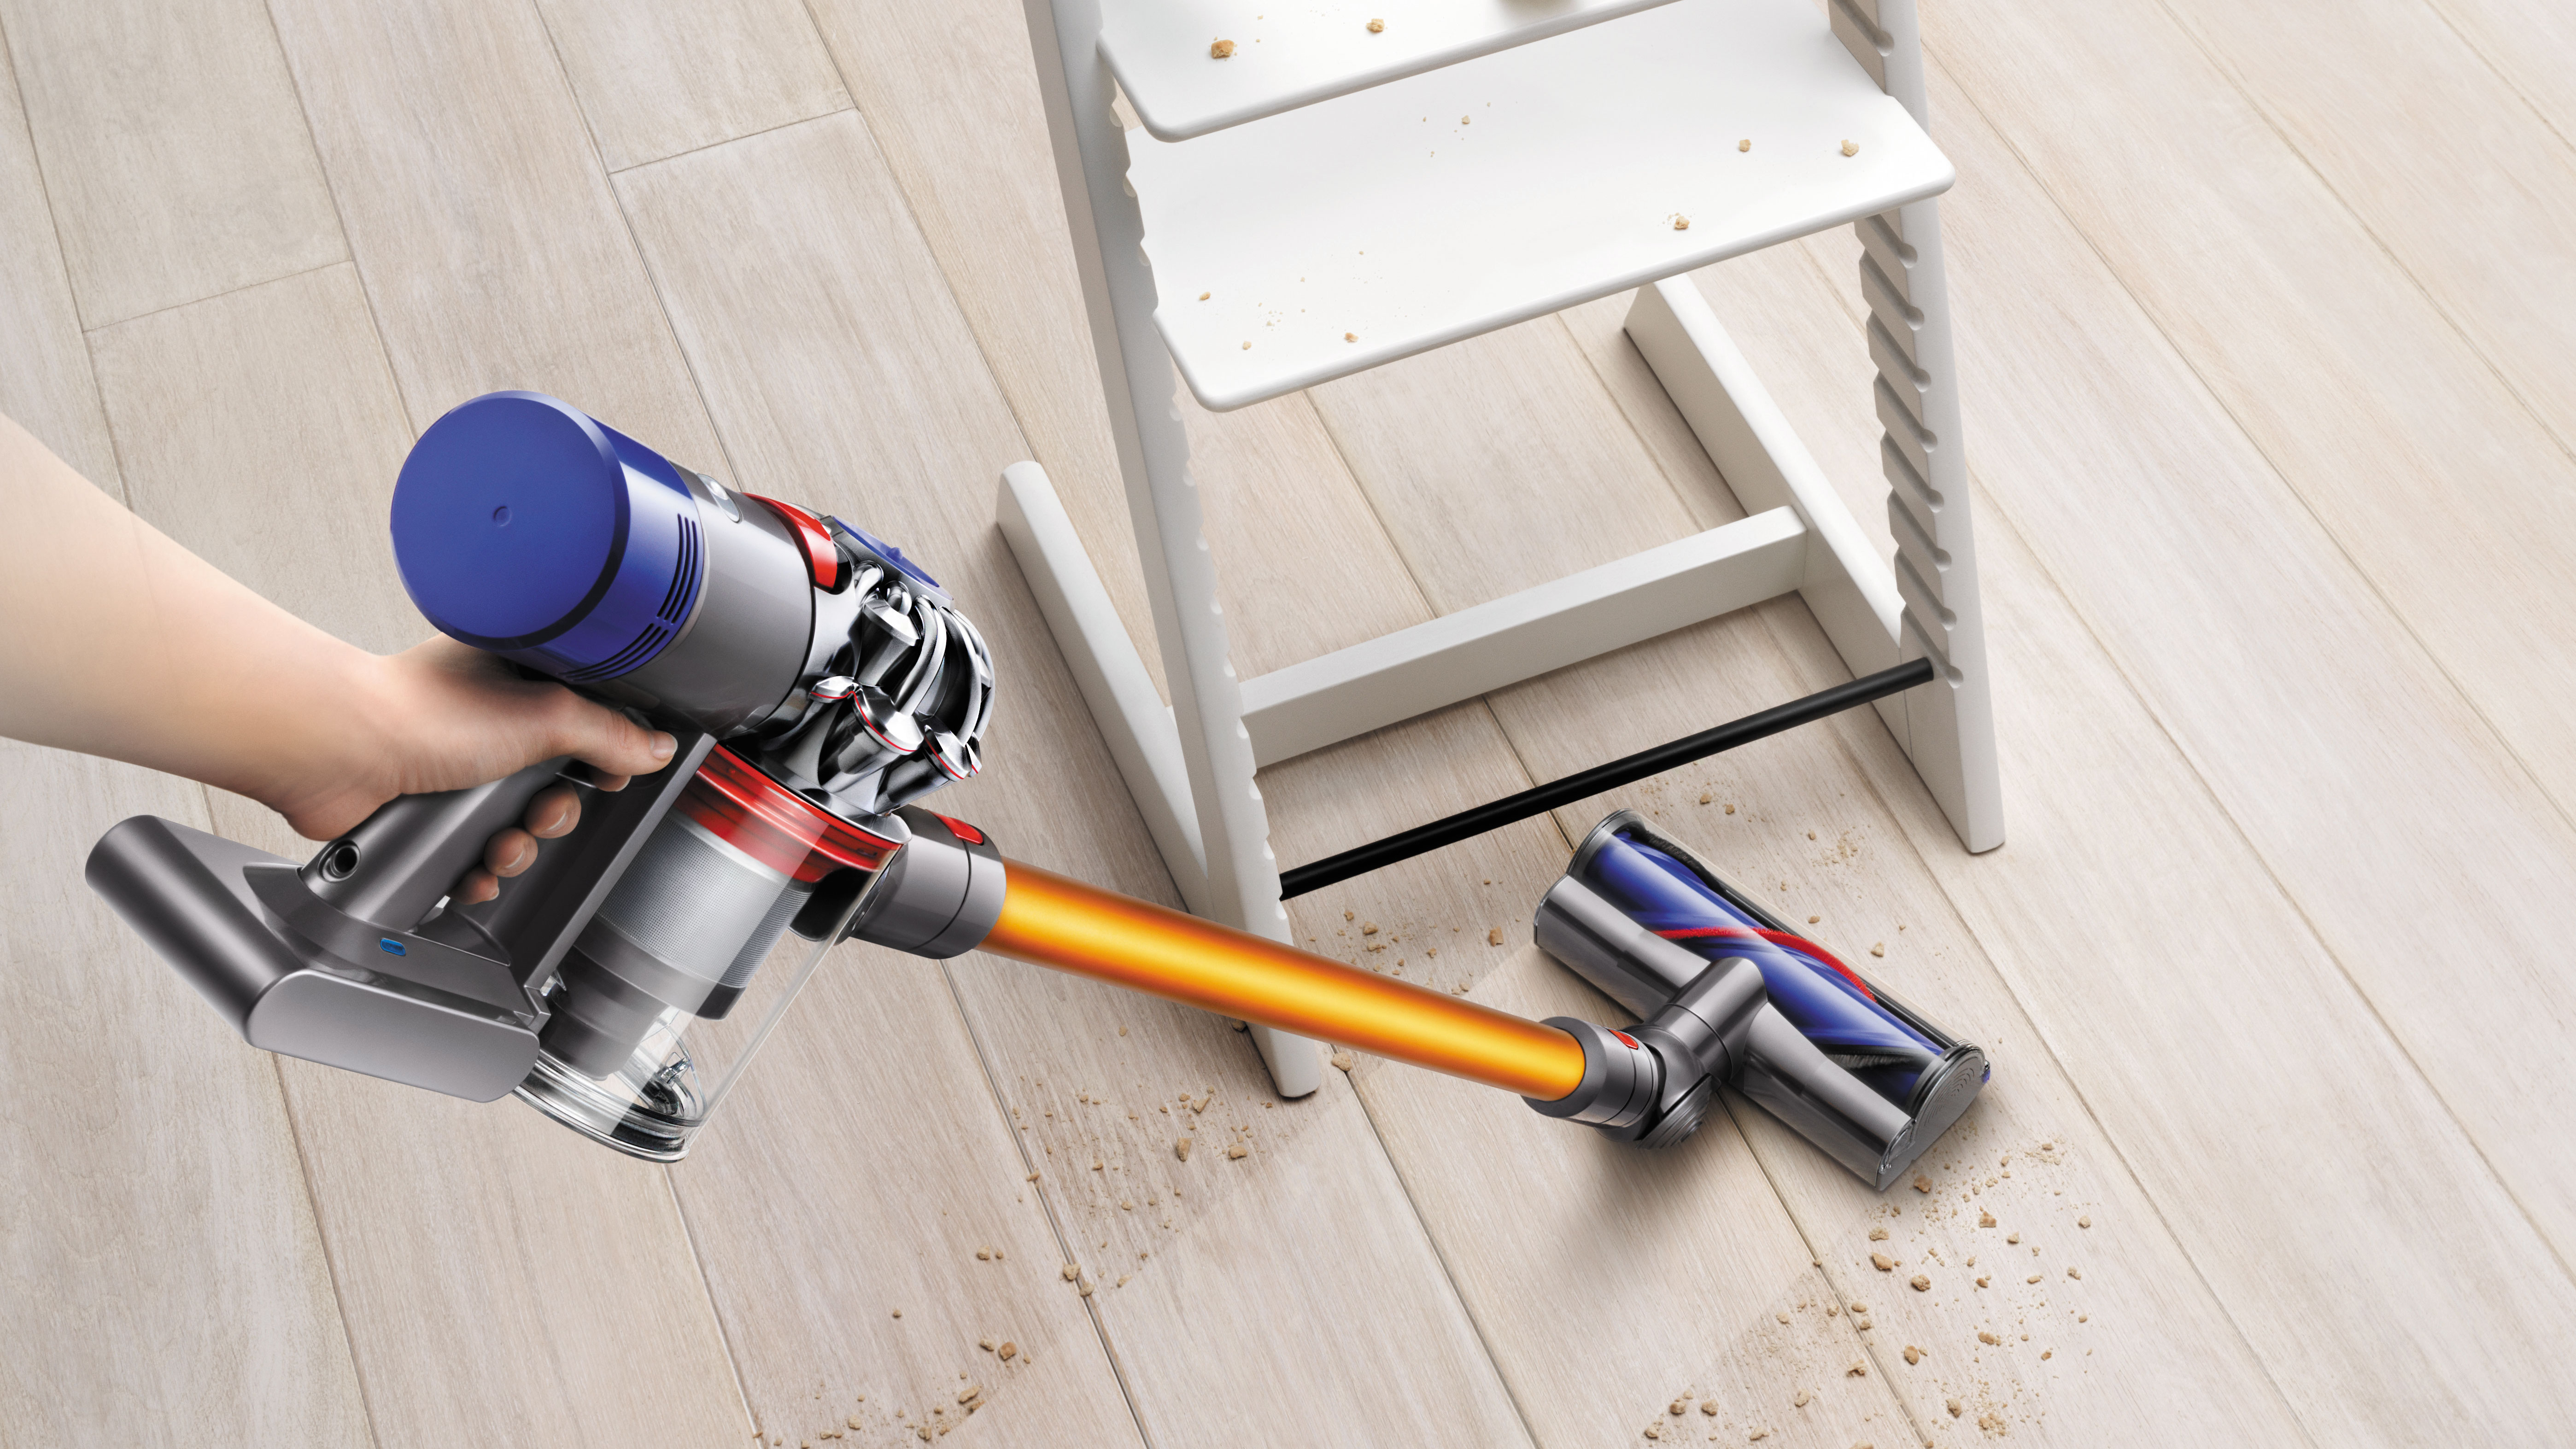 Best Dyson Cordless Vacuum >> Dyson doubles the battery life of its cordless vacuums with the V8 Absolute | Expert Reviews